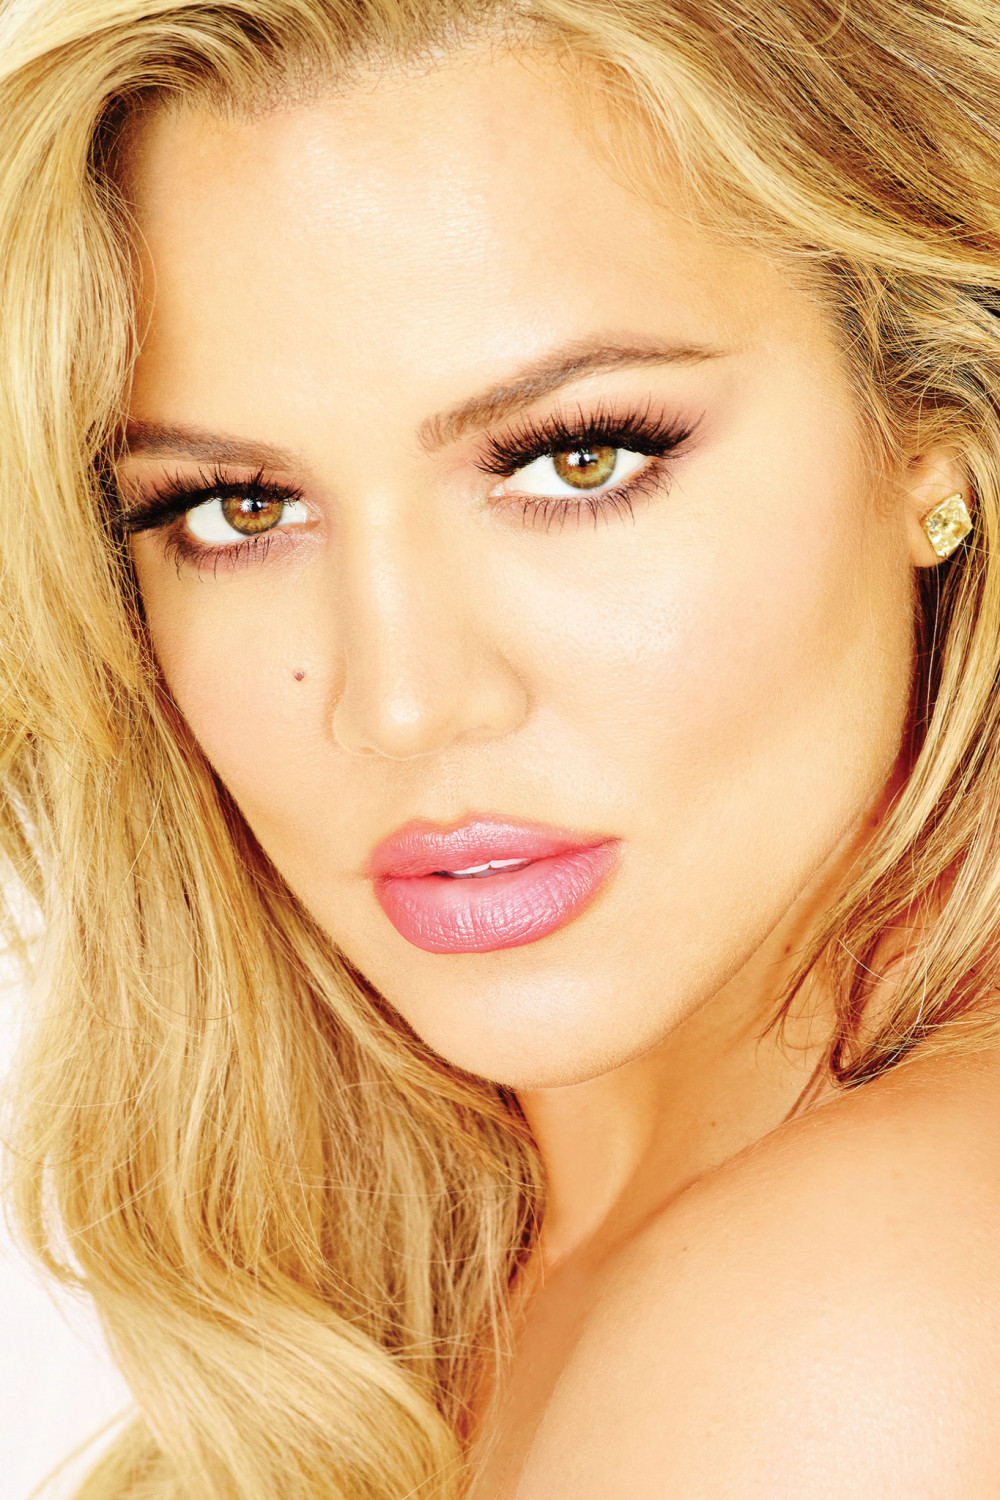 Khloe Kardashian - Strong Looks Better Naked BN 3